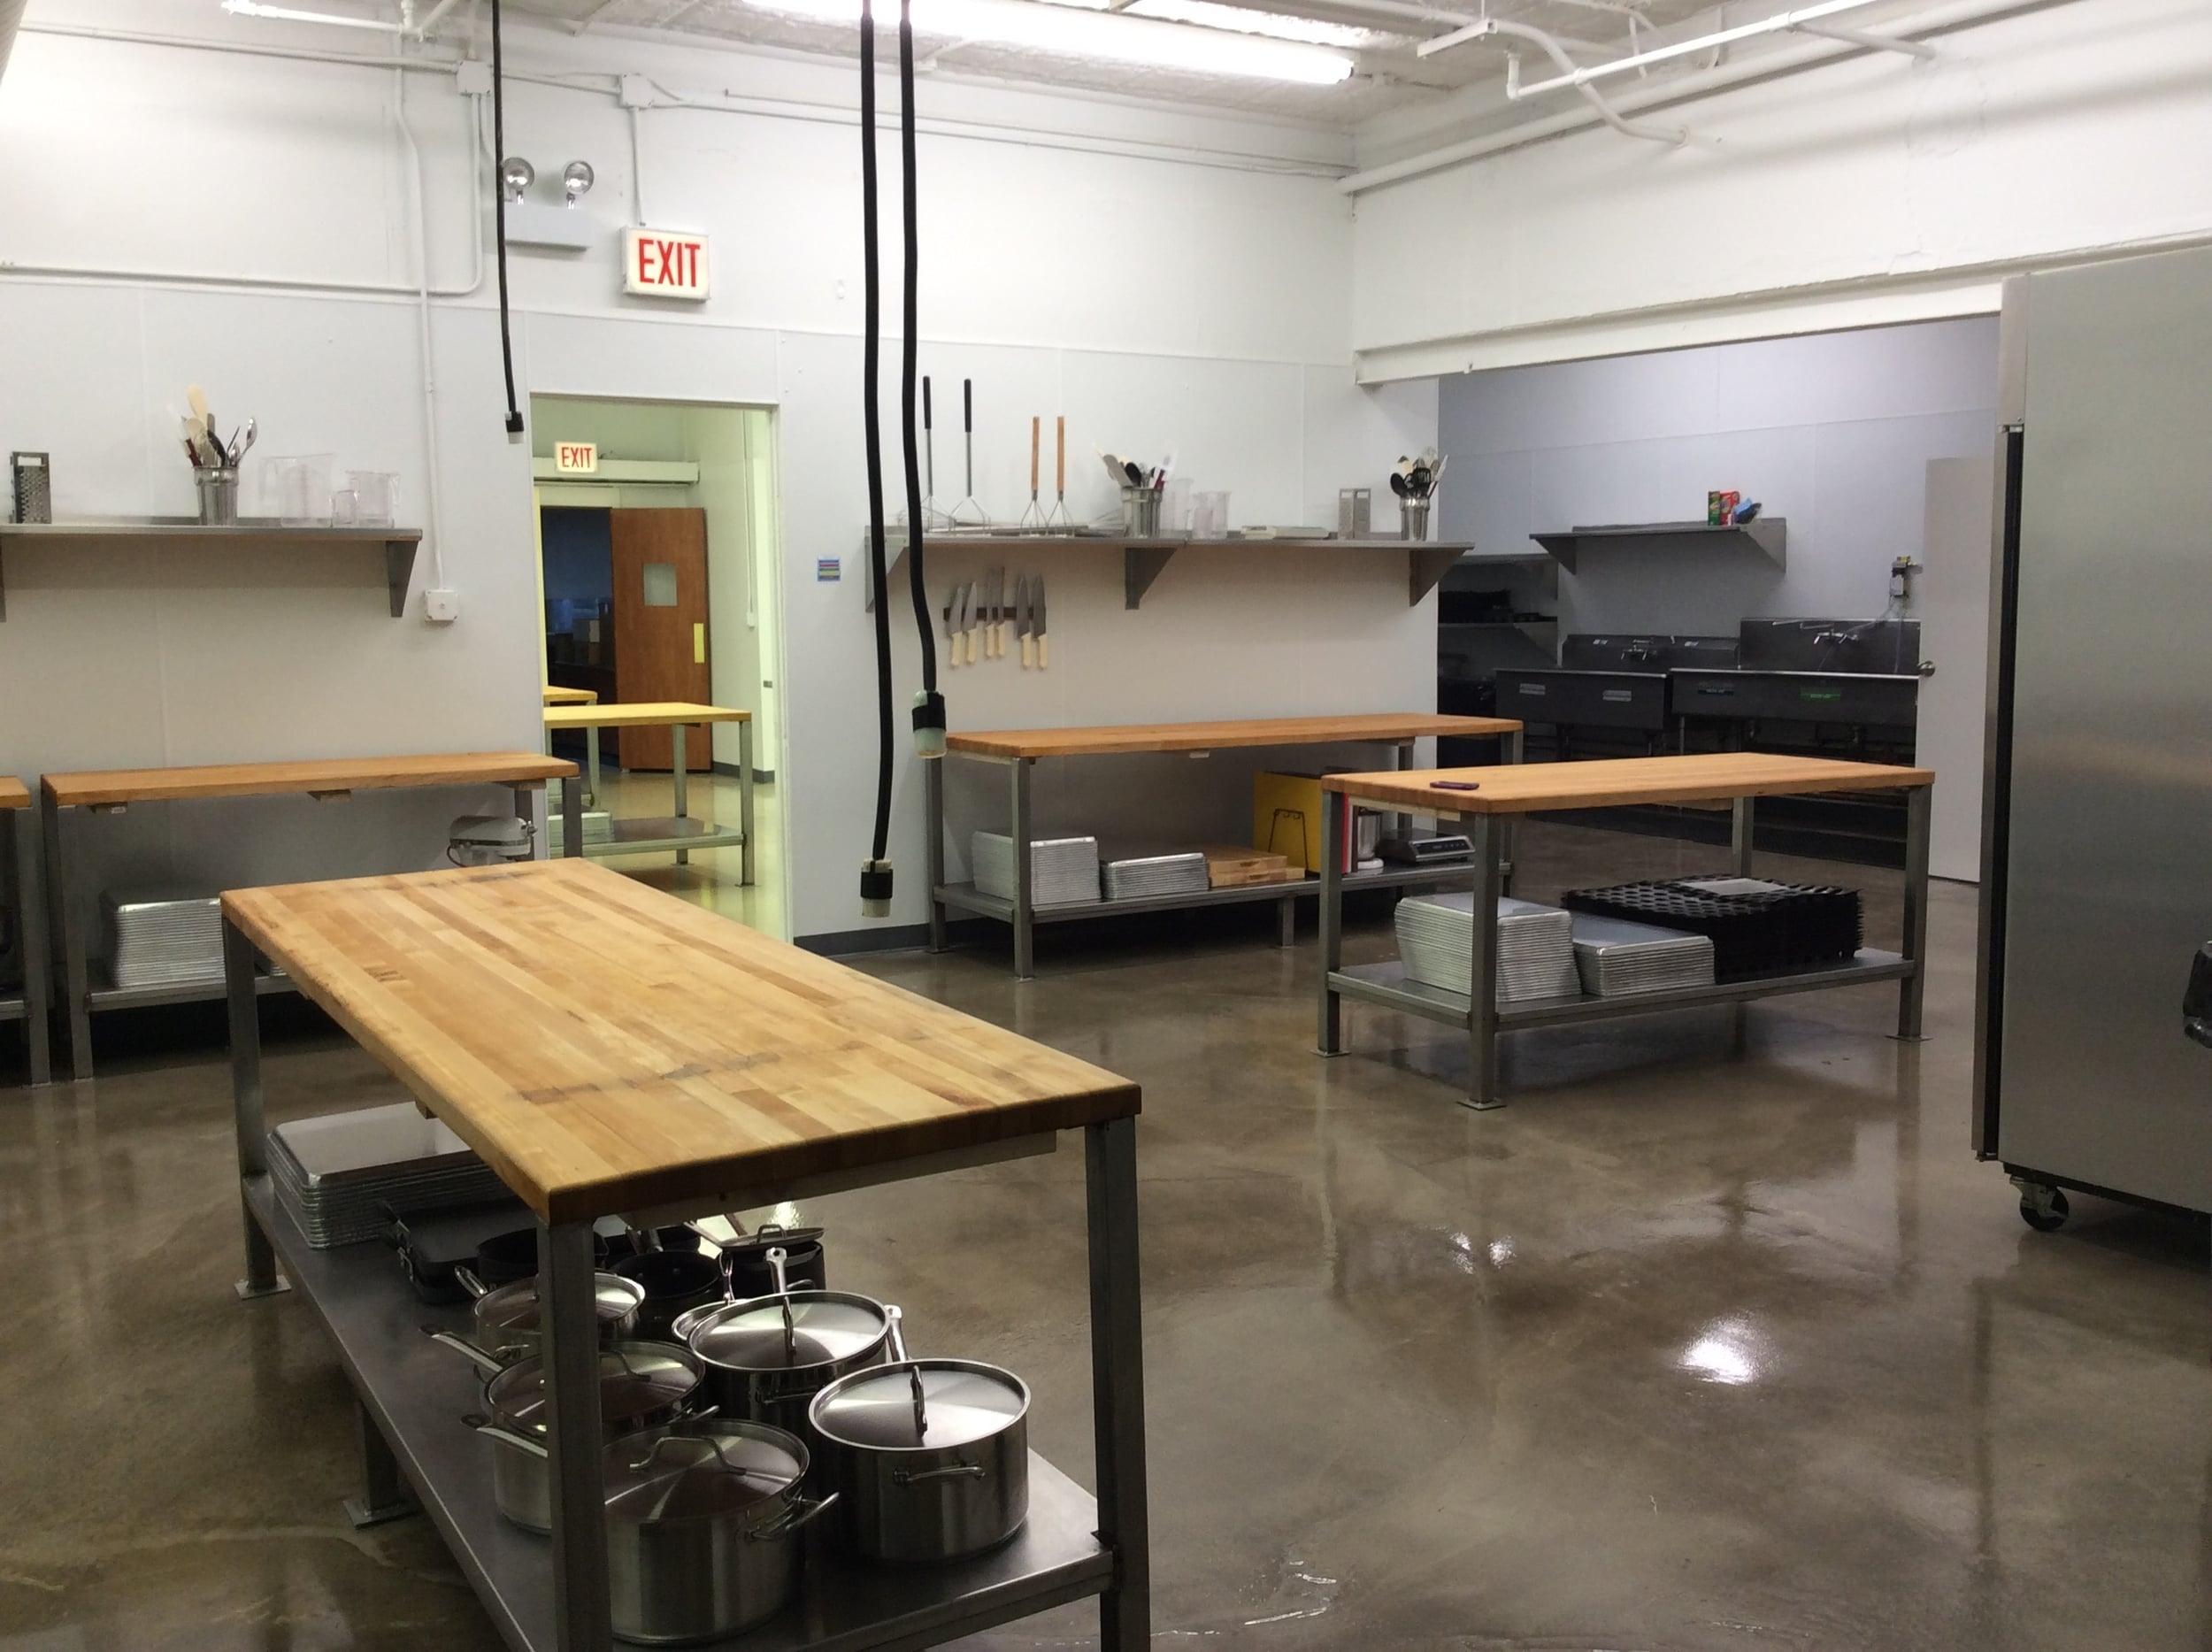 shared commercial kitchen and retail market - Shared Kitchen